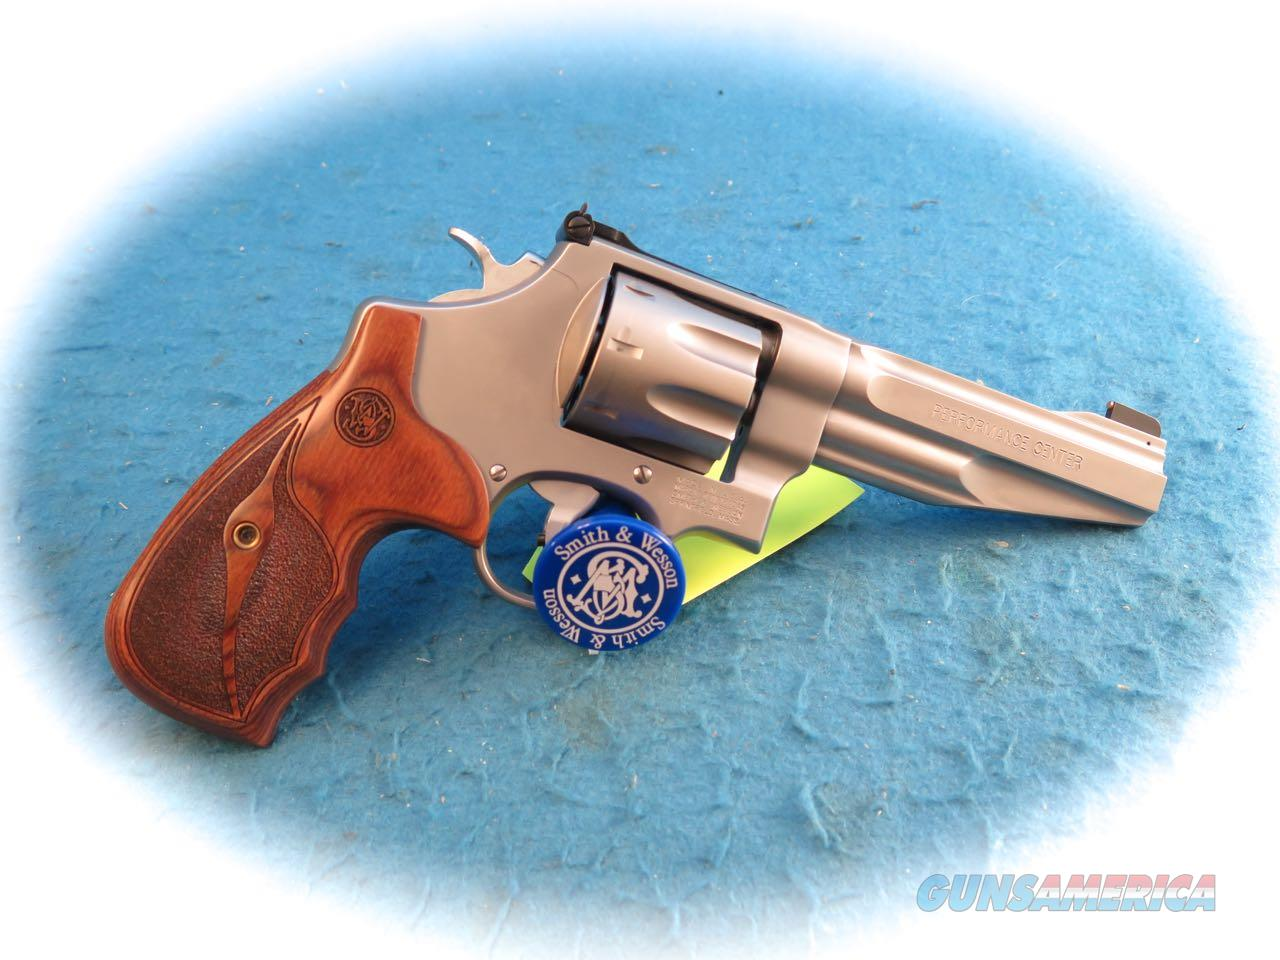 Smith & Wesson Model 627 Performance Center .357 Magnum 8 Shot Revolver  SKU 1702010**New**  Guns > Pistols > Smith & Wesson Revolvers > Performance Center